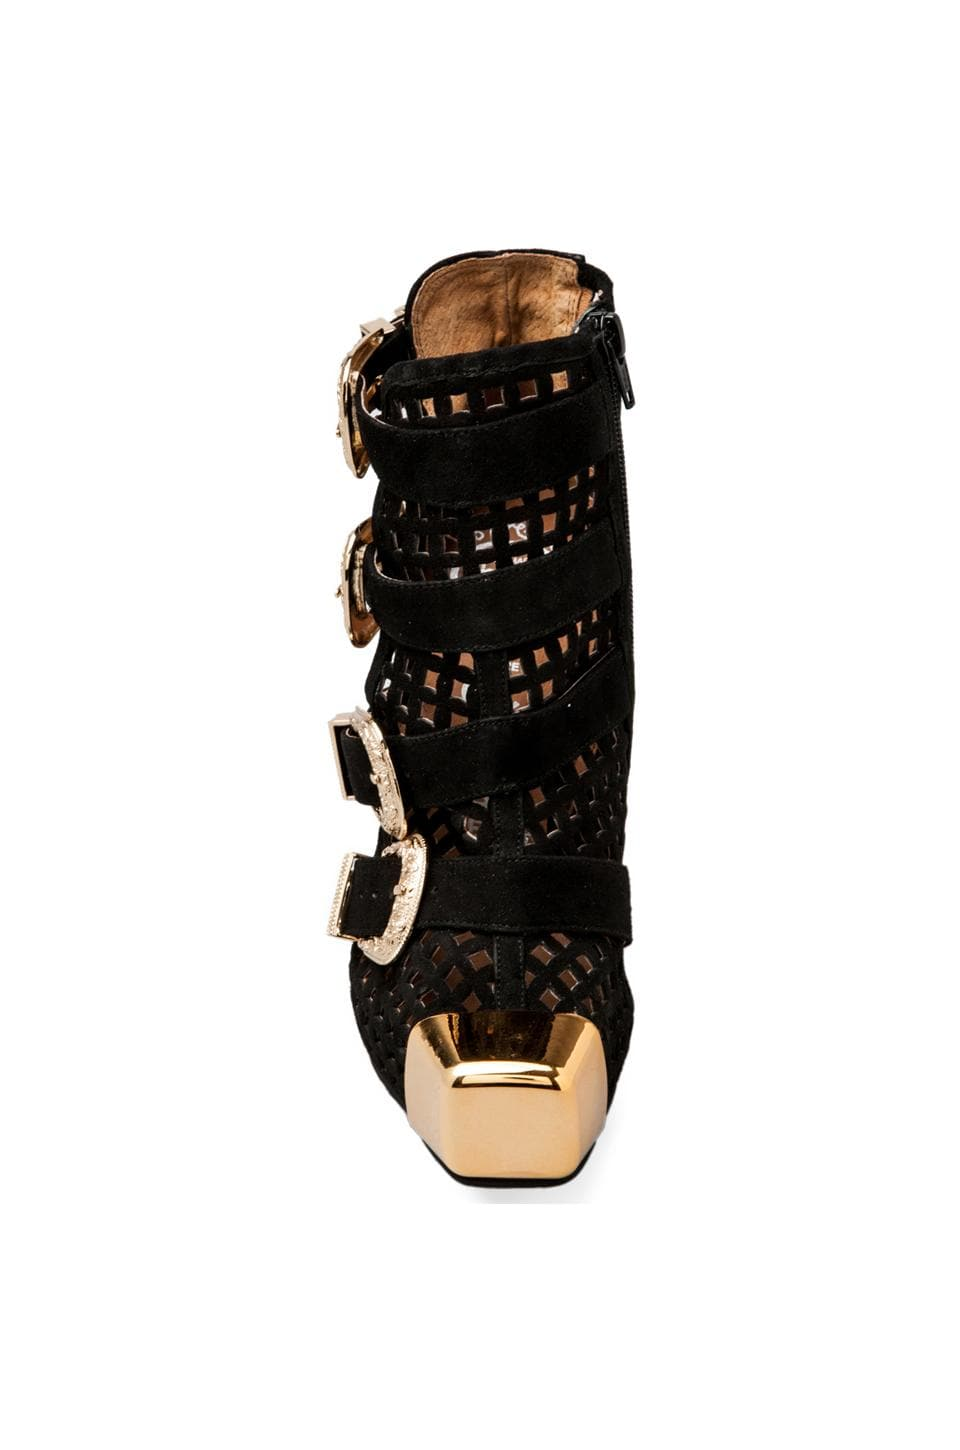 Jeffrey Campbell Charisma in Black Suede Perf/Gold